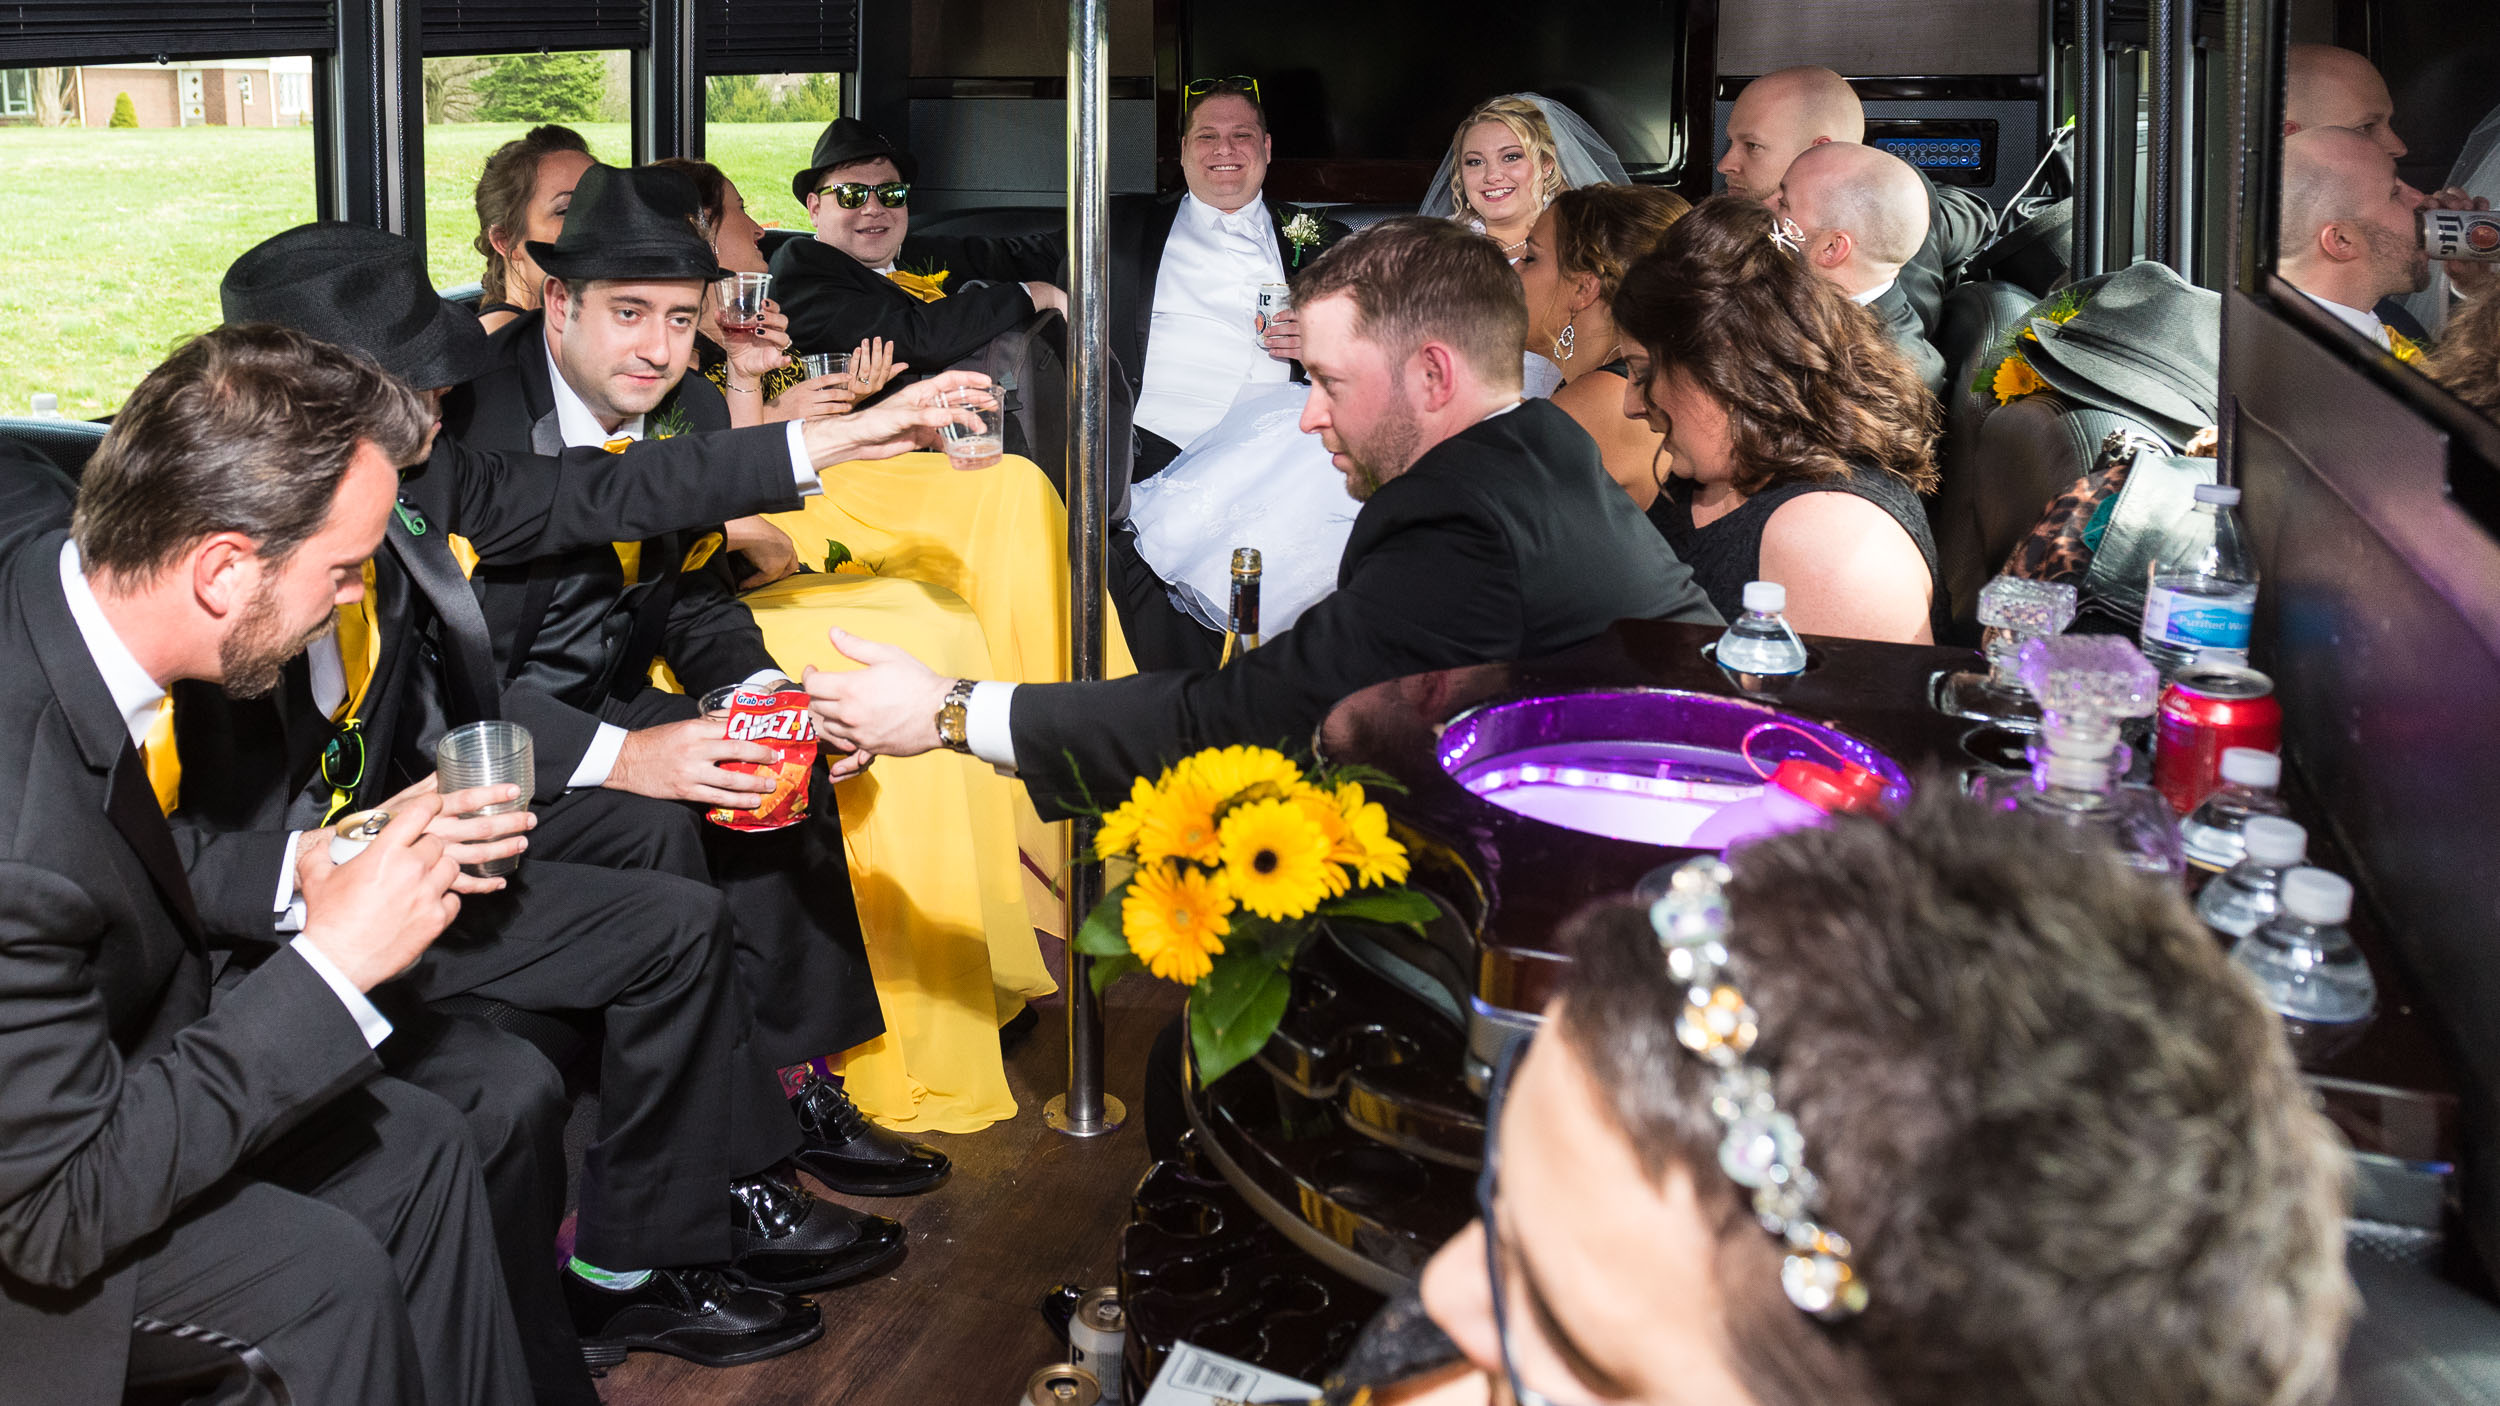 Bridal-Party-on-Party-Bus-1.jpg